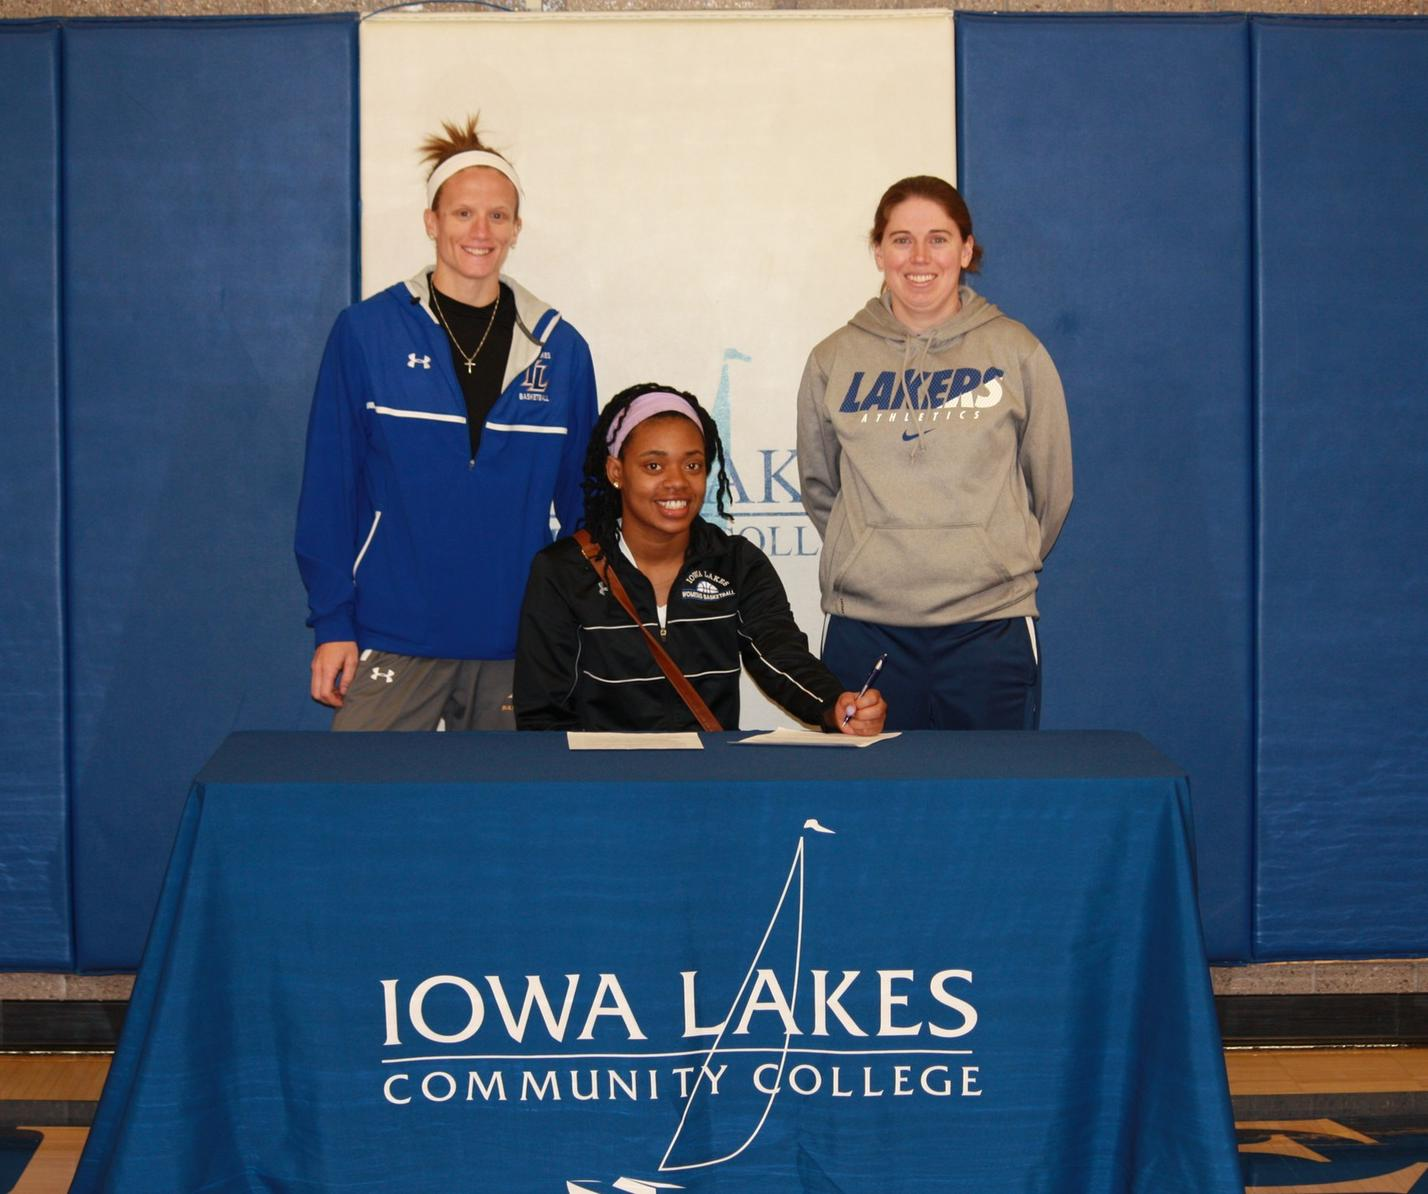 Anjanea Simms to Play Basketball at Iowa Lakes